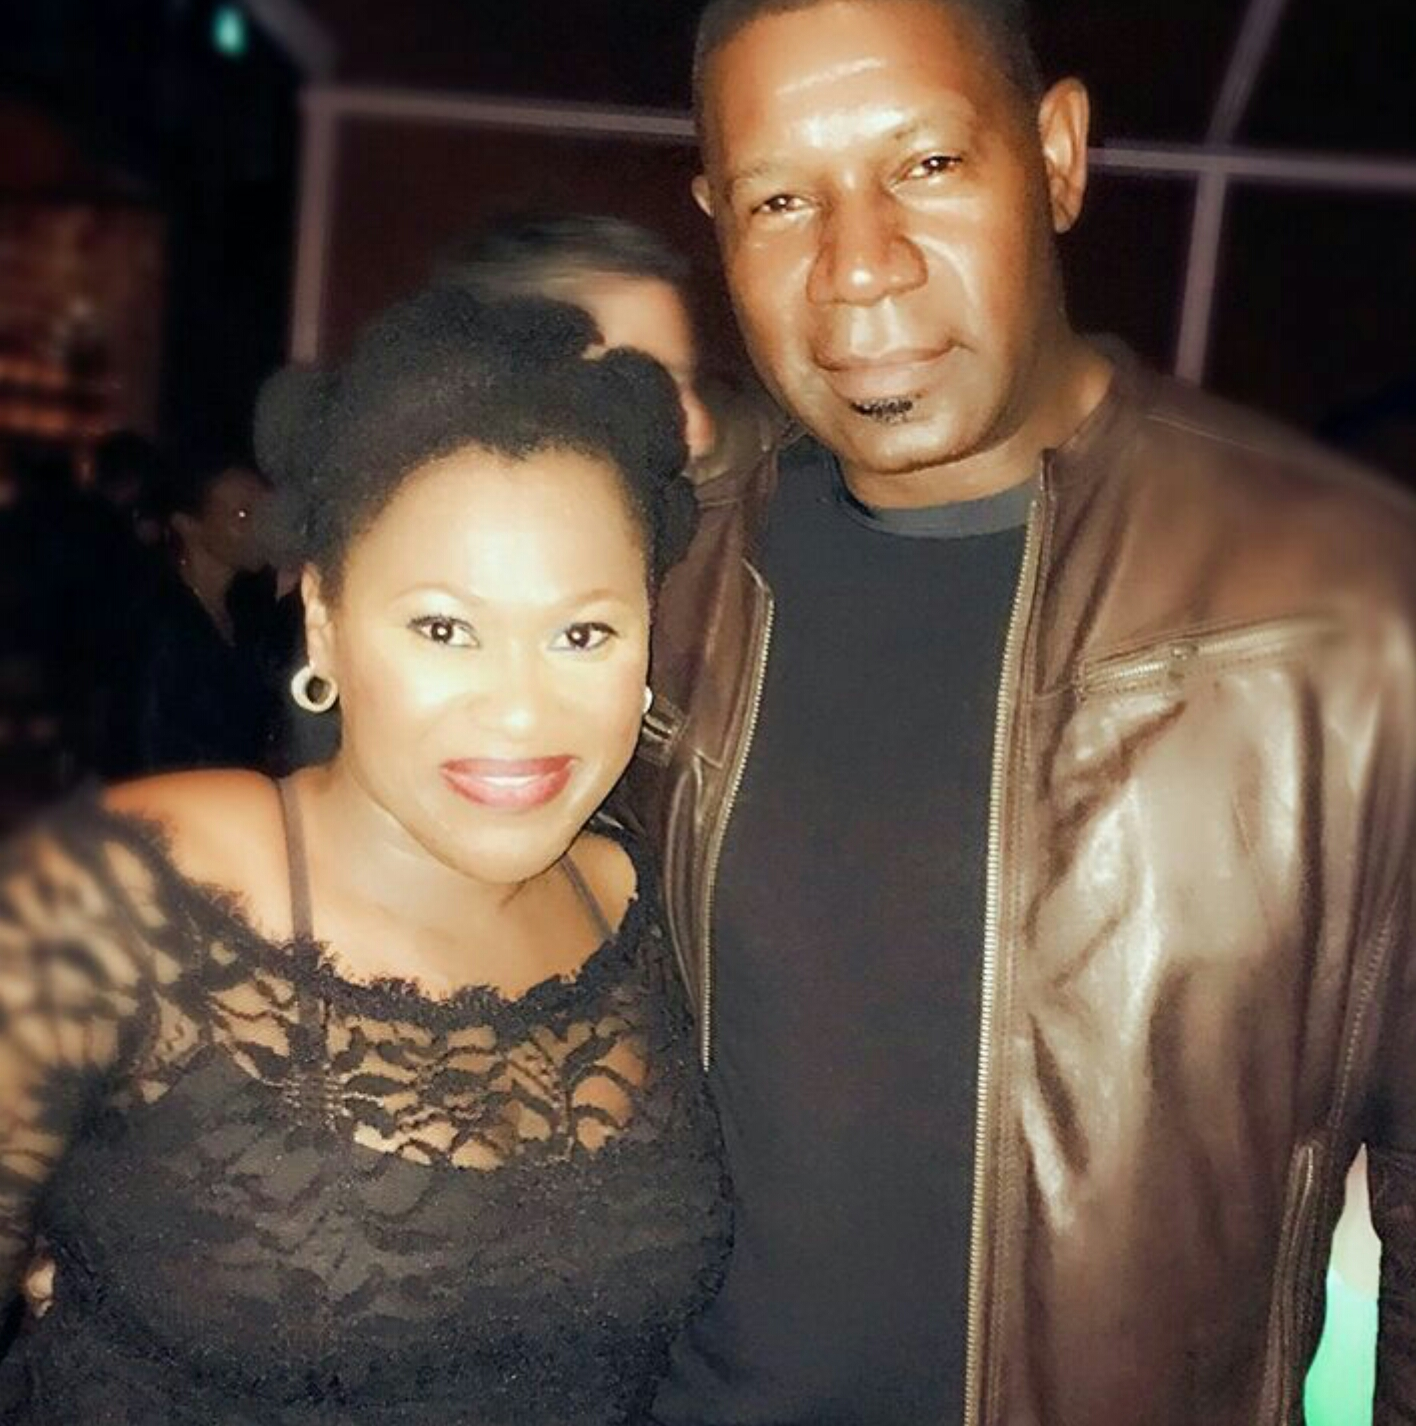 dennis haysbert and elena simms relationship advice